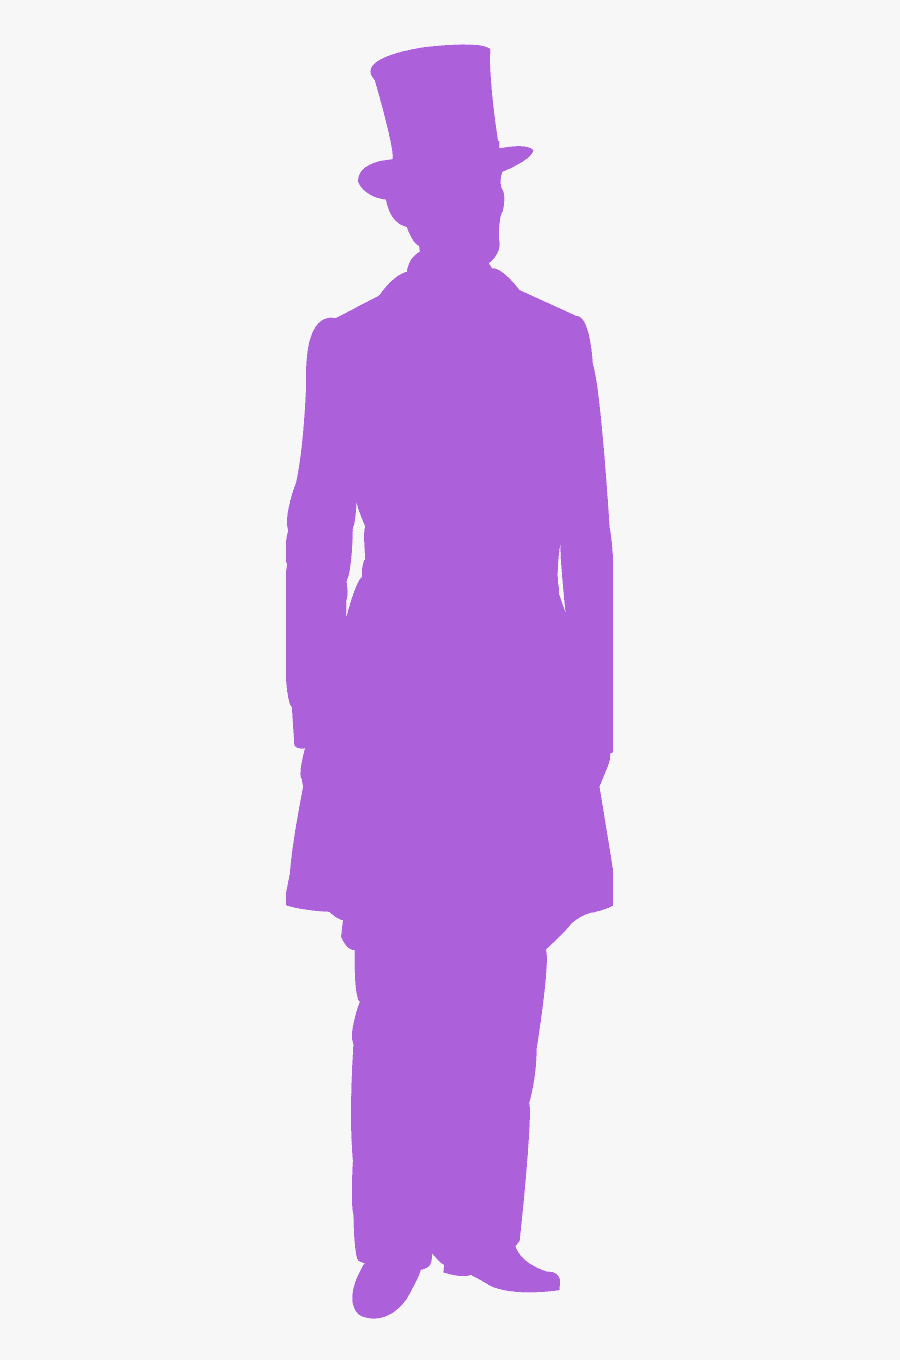 Man In Hat Silhouettes, Transparent Clipart